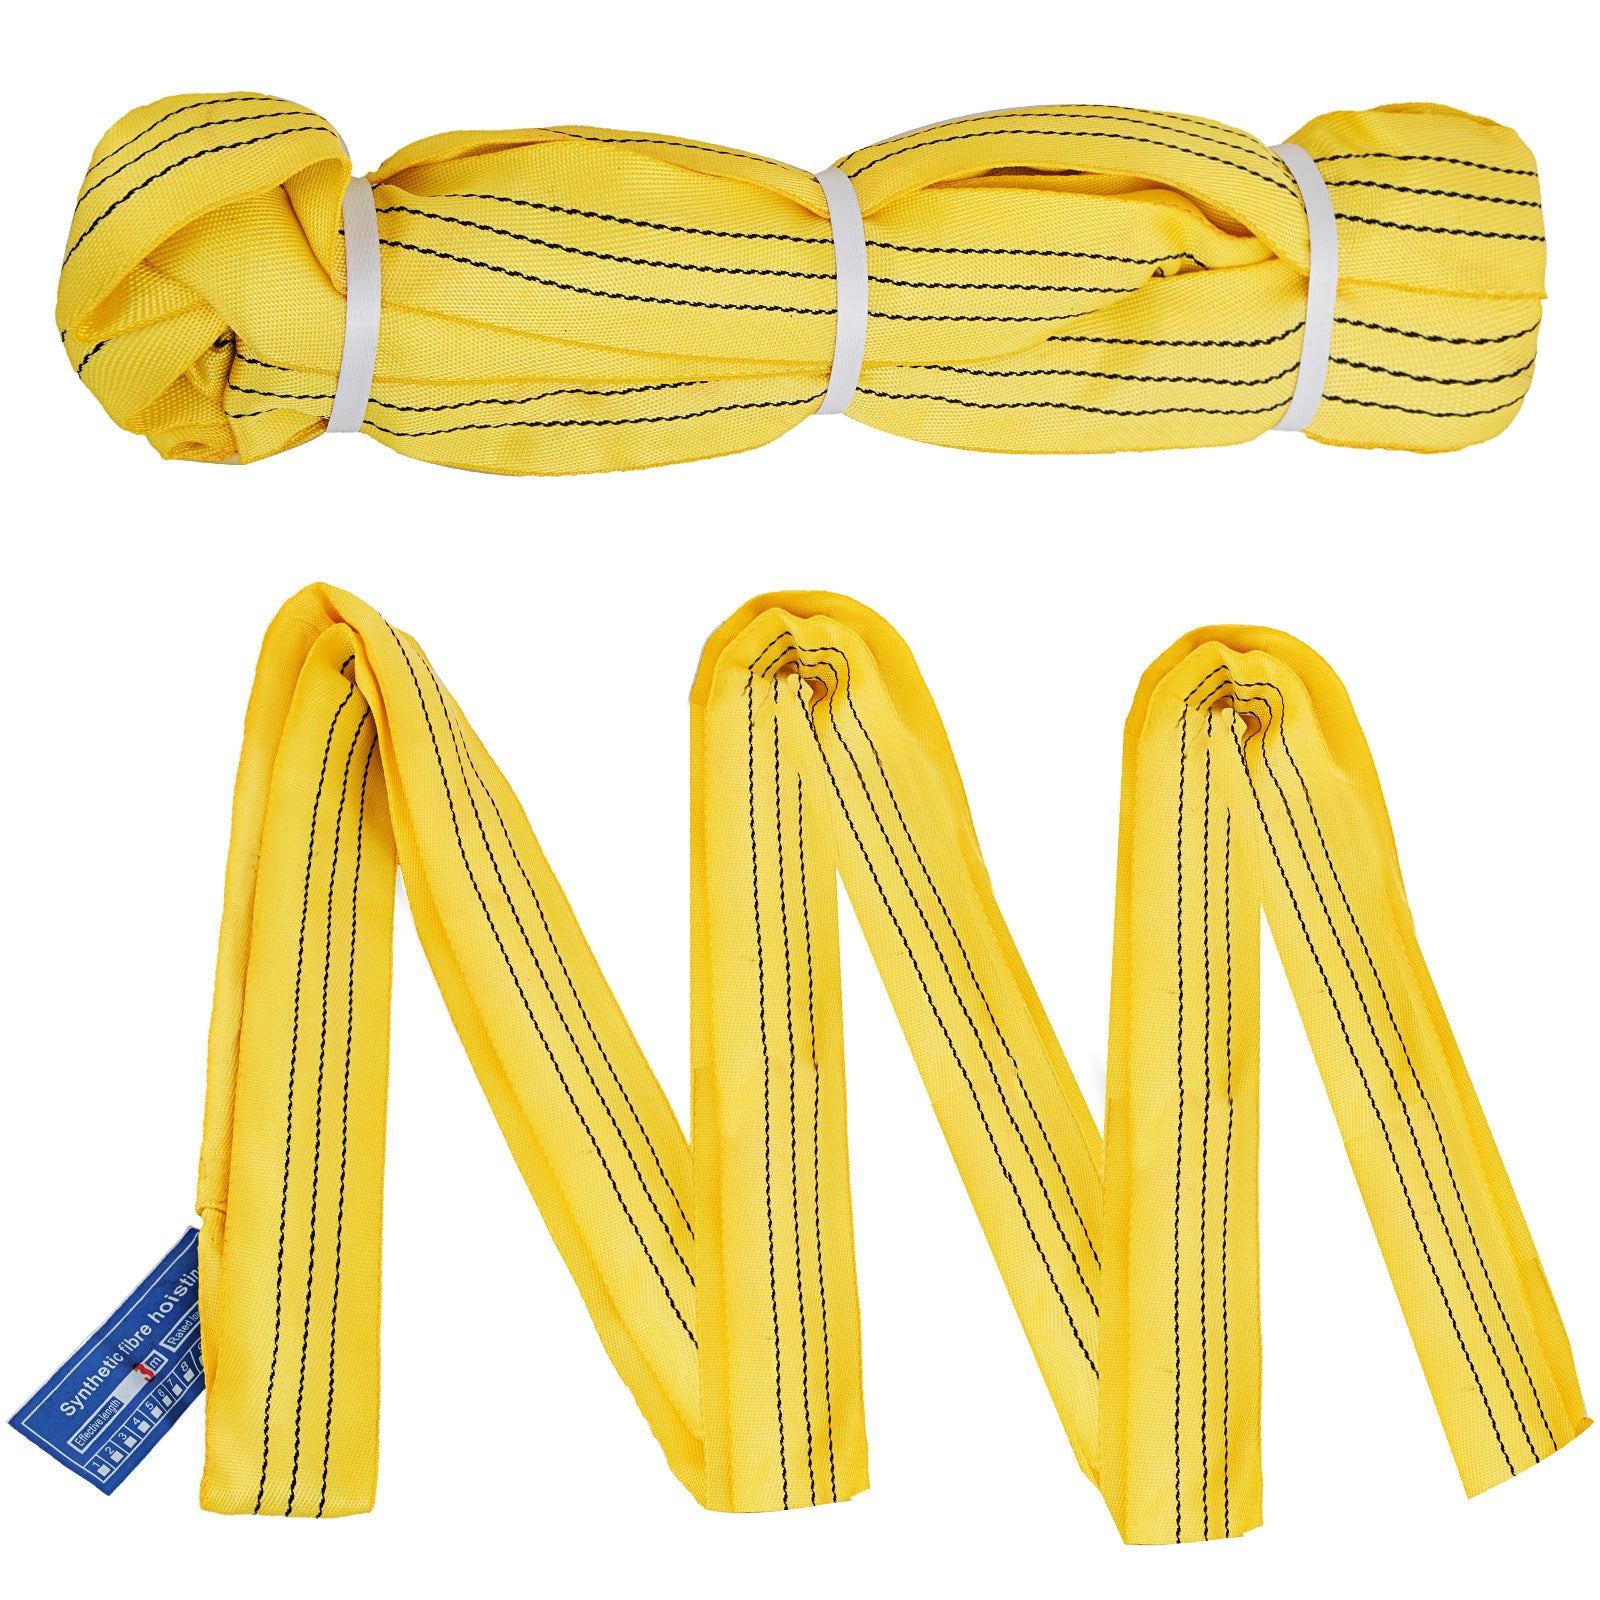 2pcs 12ft Perimeter 6600lbs Endless Round Lifting Sling 3.6m/12ft Rigging Crane